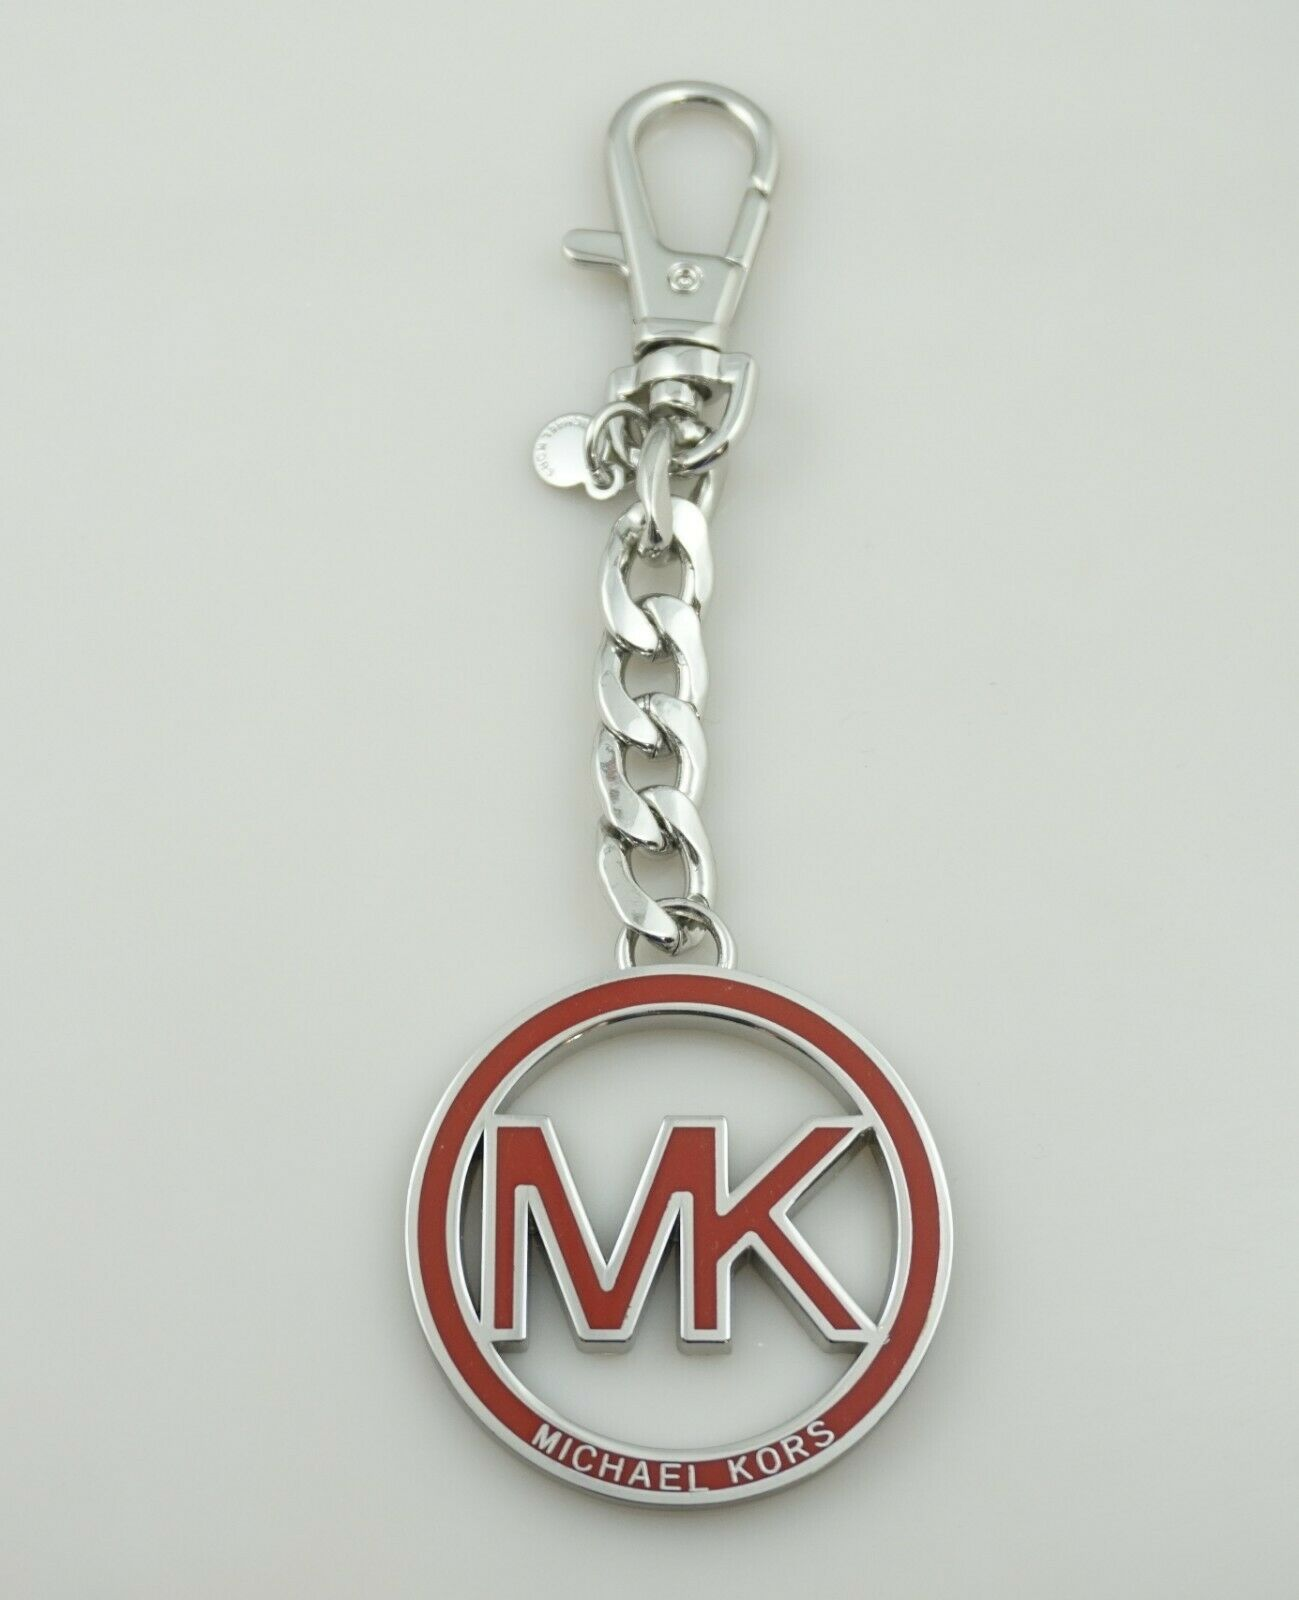 Michael Kors Mk Logo Key Fob Hang Tag Purse Charm Chain Shining Authentic 1 Of 1only 2 Available